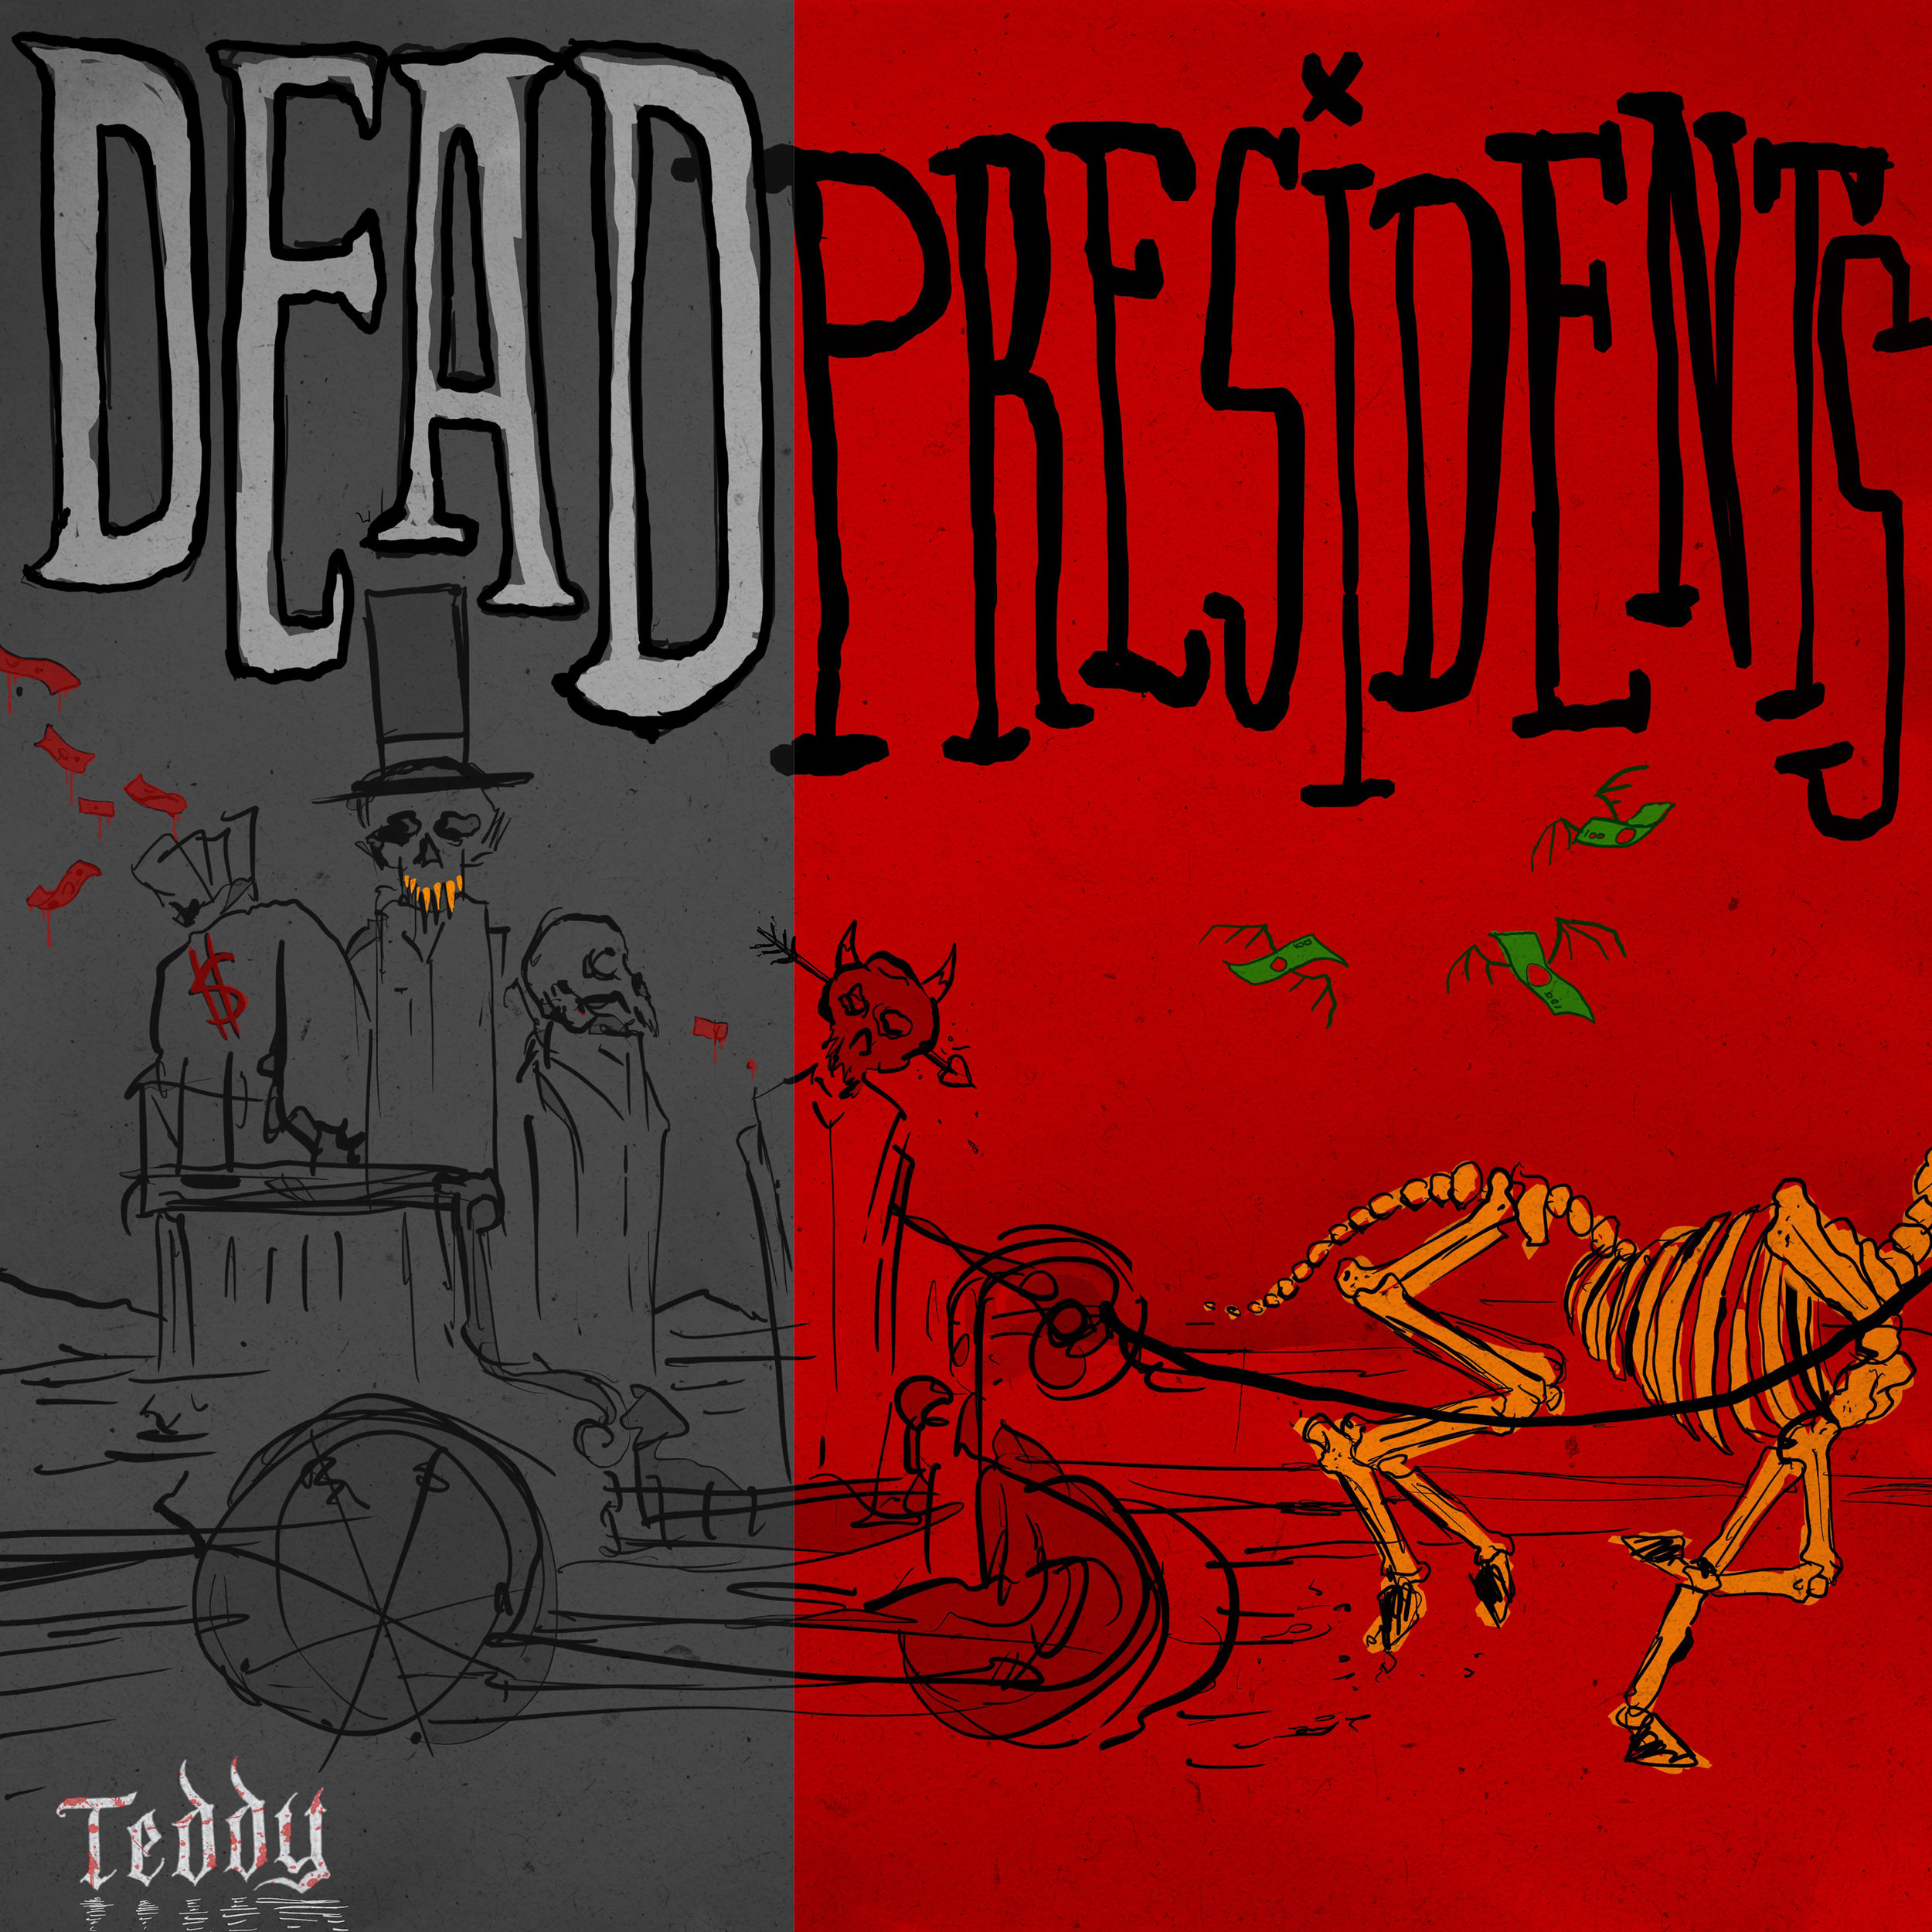 Teddy - Dead Presidents - Textured.jpg